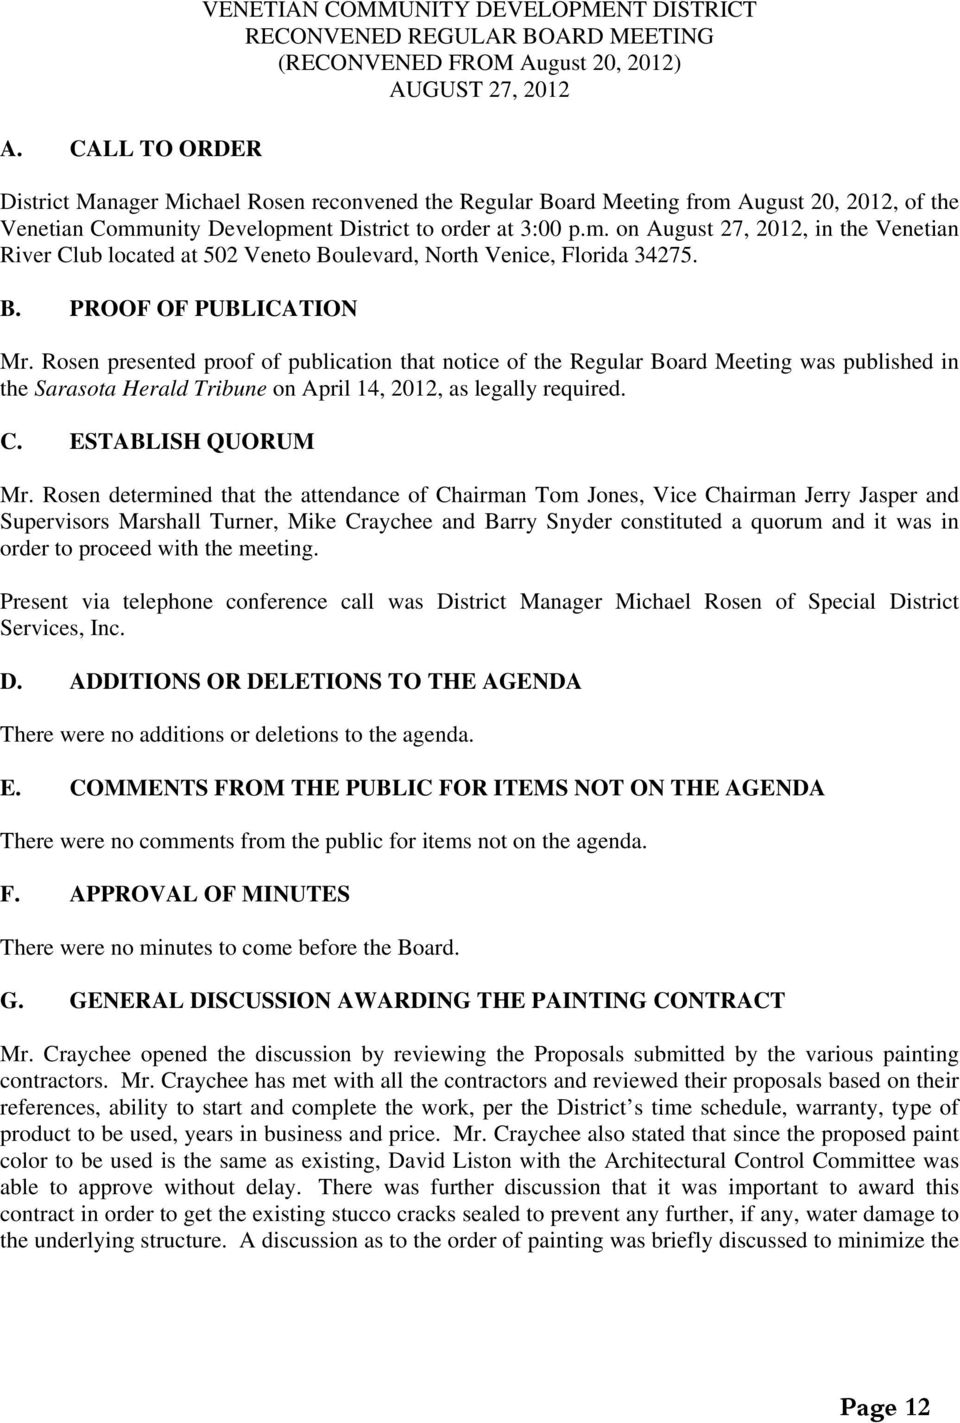 B. PROOF OF PUBLICATION Mr. Rosen presented proof of publication that notice of the Regular Board Meeting was published in the Sarasota Herald Tribune on April 14, 2012, as legally required. C.